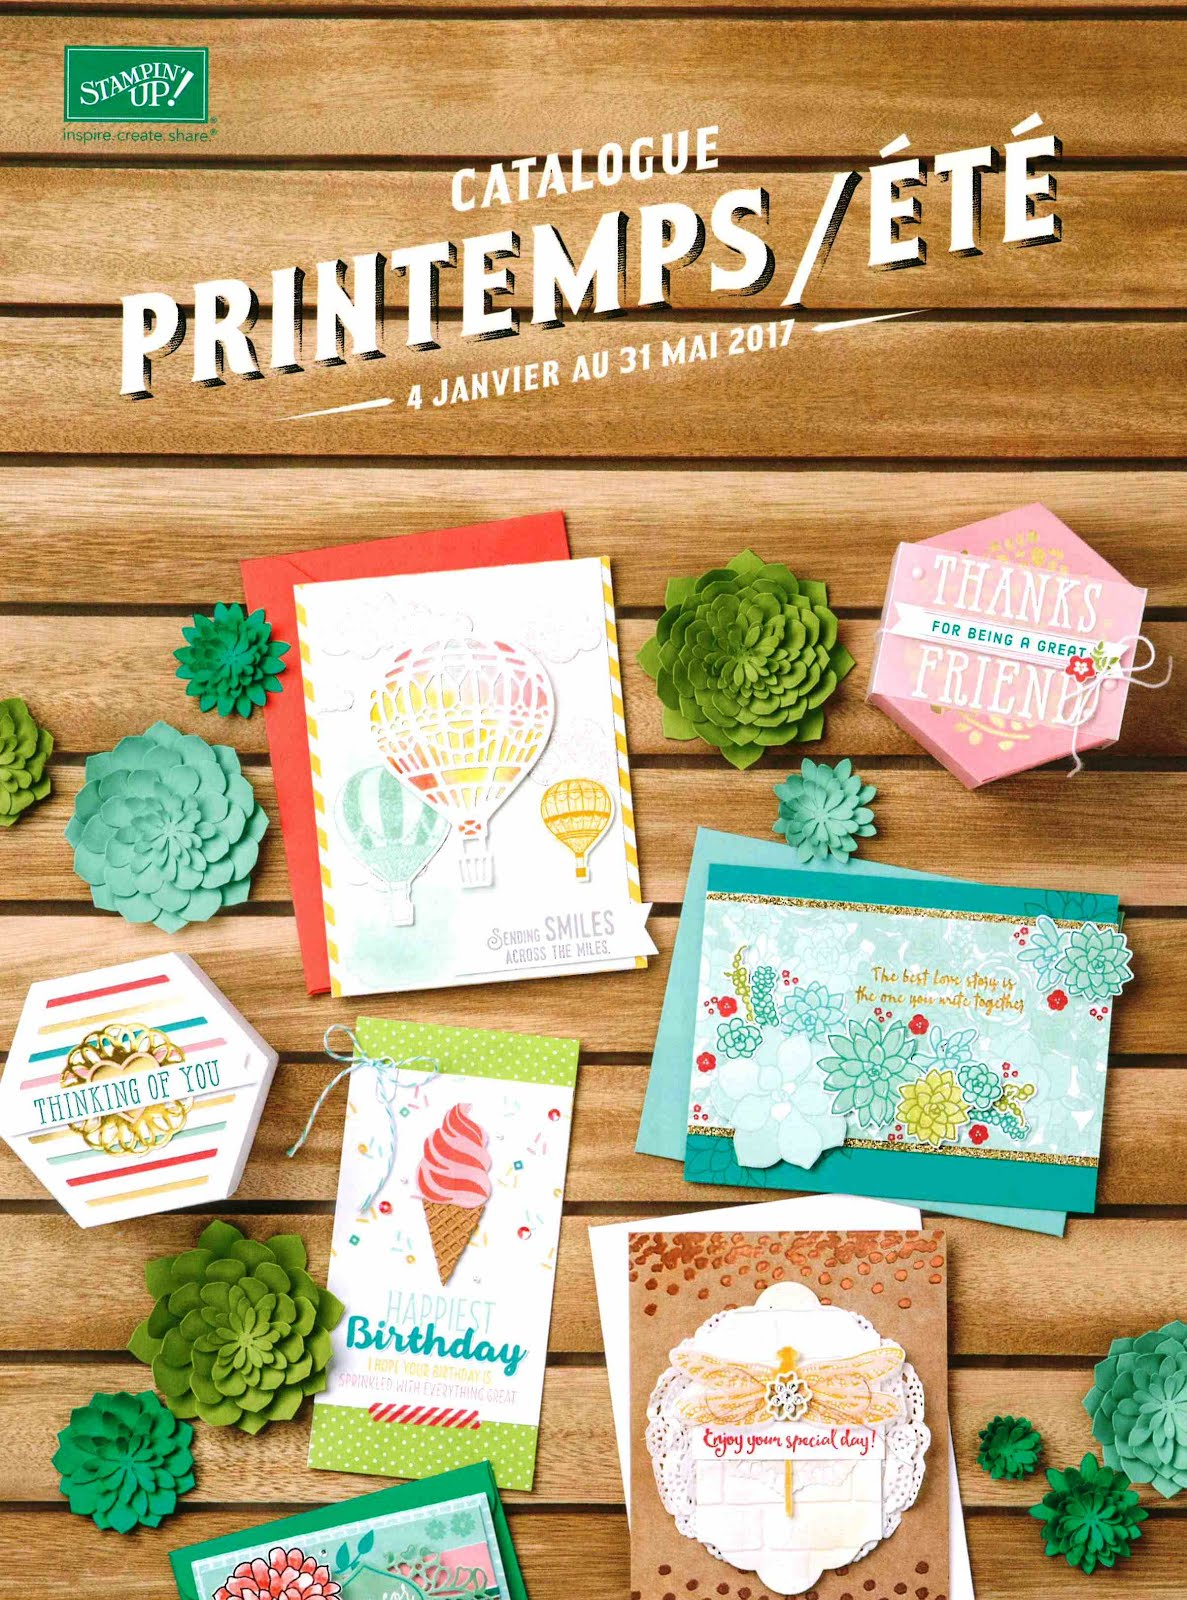 Catalogue Printemps Ete 2017 !